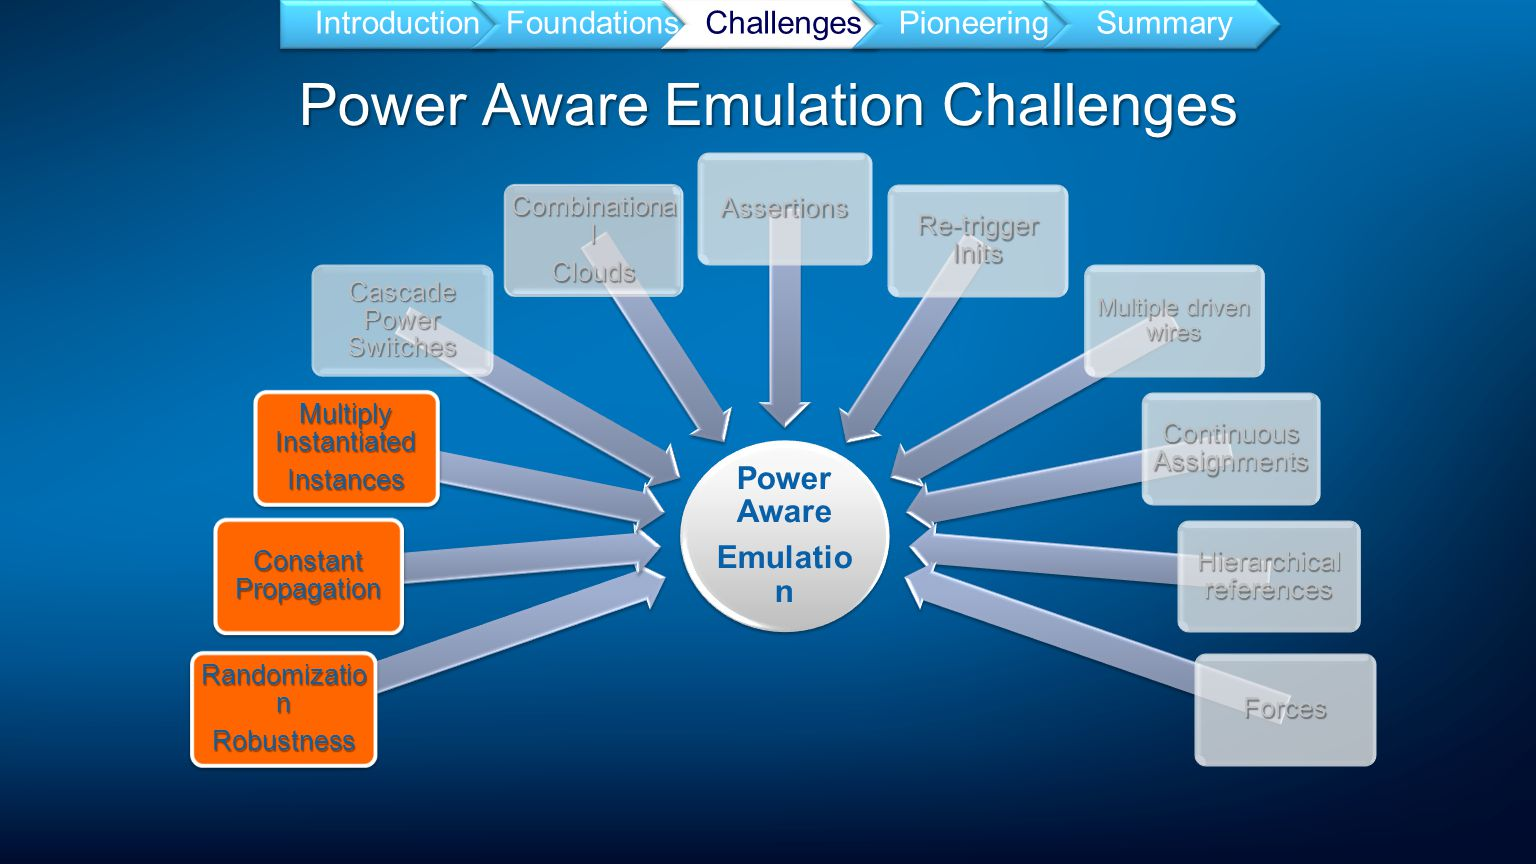 Power Aware Emulation Challenges IntroductionFoundationsChallengesPioneeringSummary Power Aware Emulatio n Randomizatio n Robustness Constant Propagation Multiply Instantiated Instances Cascade Power Switches Combinationa l Clouds Assertions Re-trigger Inits Multiple driven wires Continuous Assignments Hierarchical references Forces